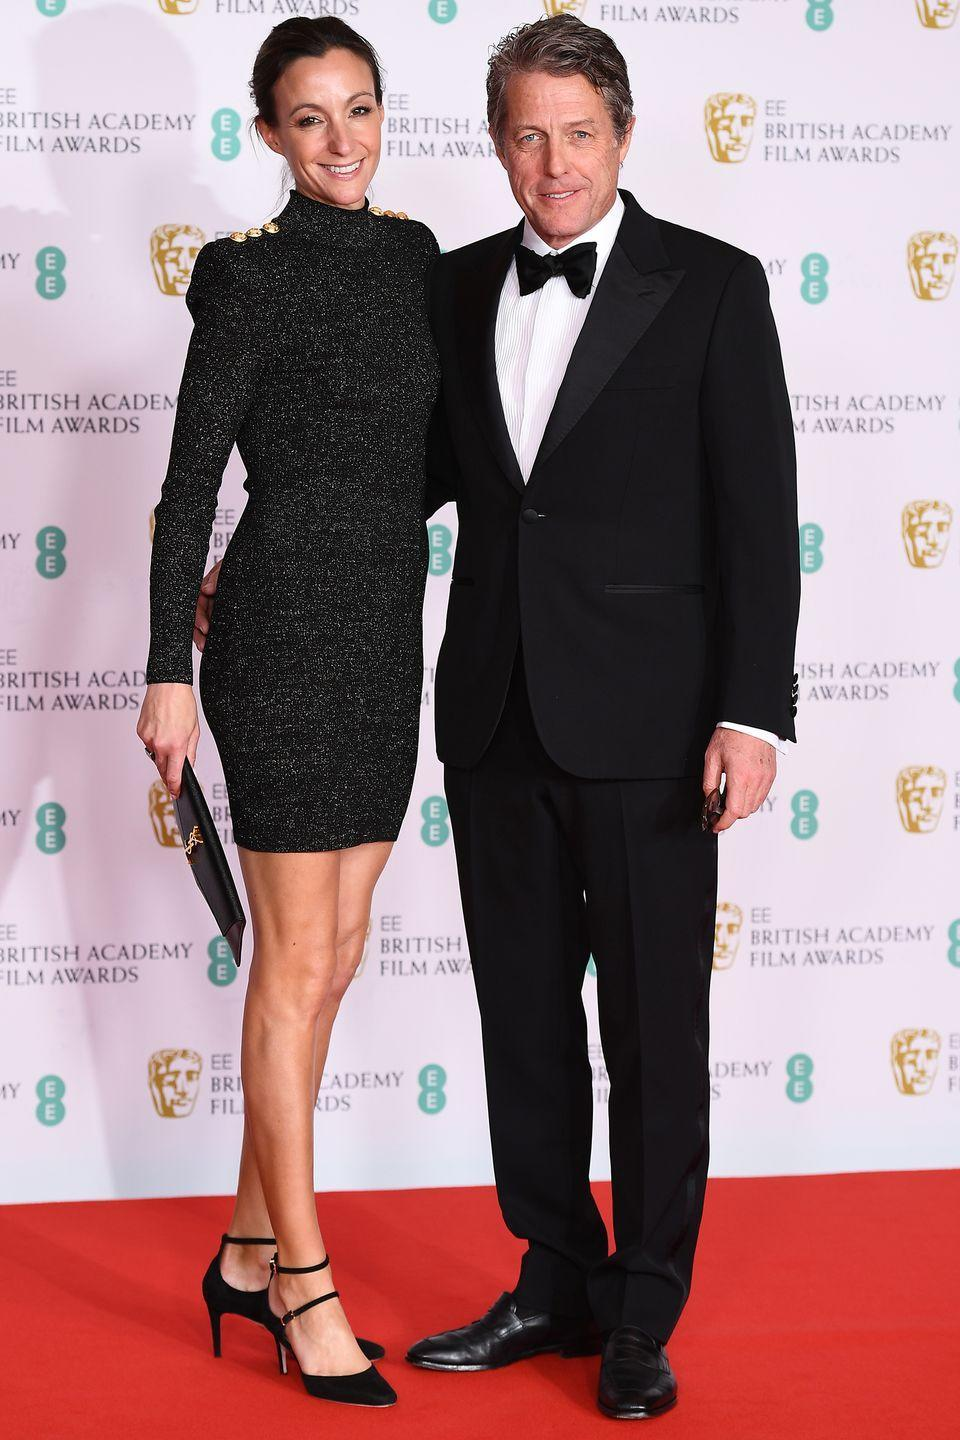 <p>Hugh Grant and wife Anna Eberstein posed together on the red carpet. </p>